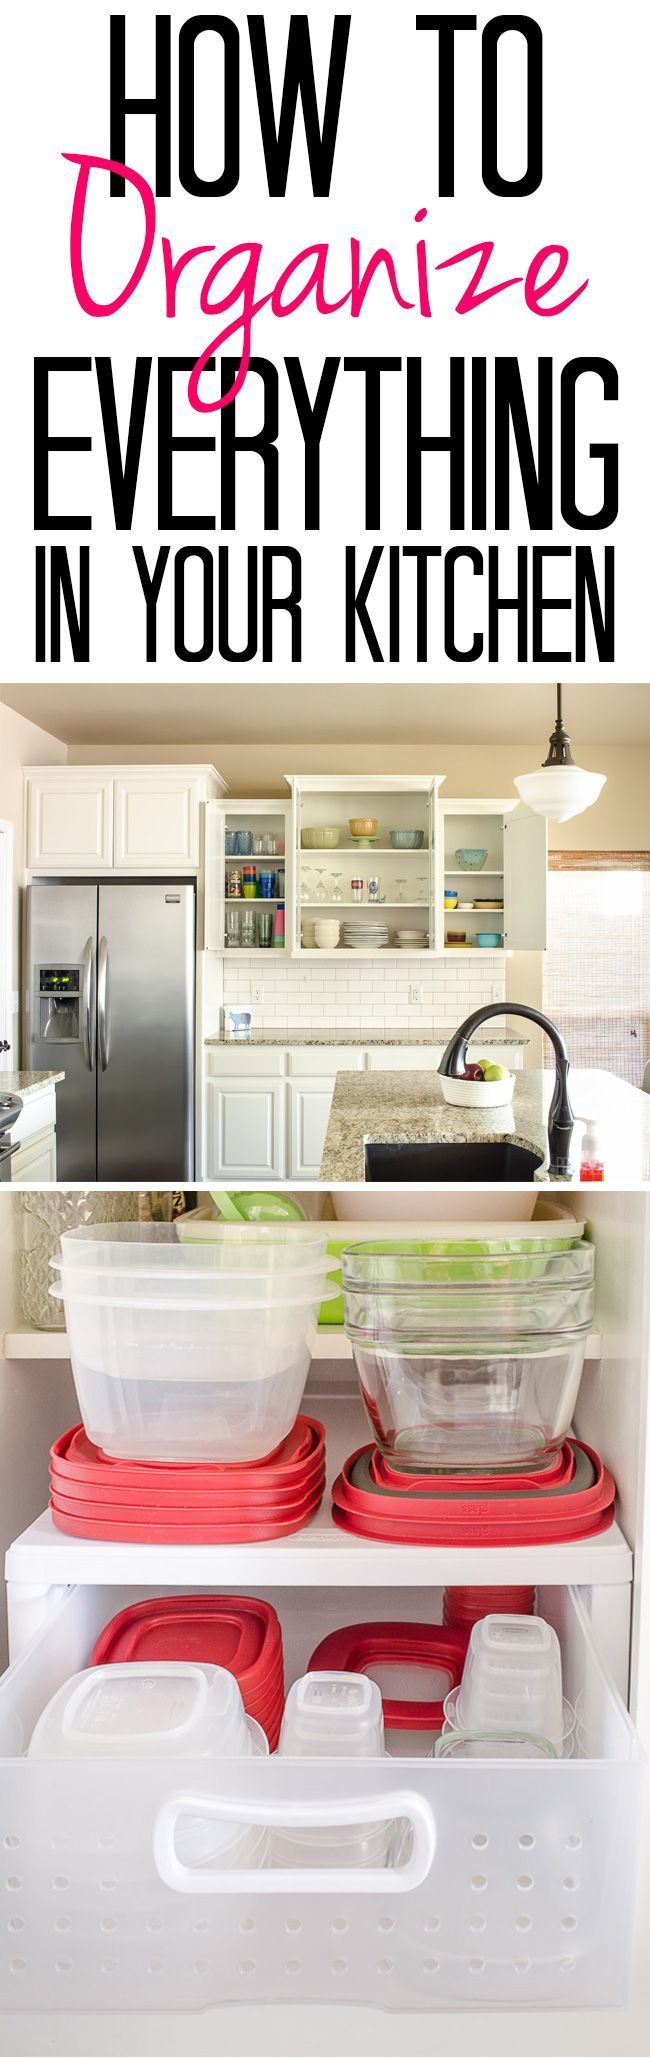 How to Organize Everything in Your Kitchen   Organizing, Kitchens ...